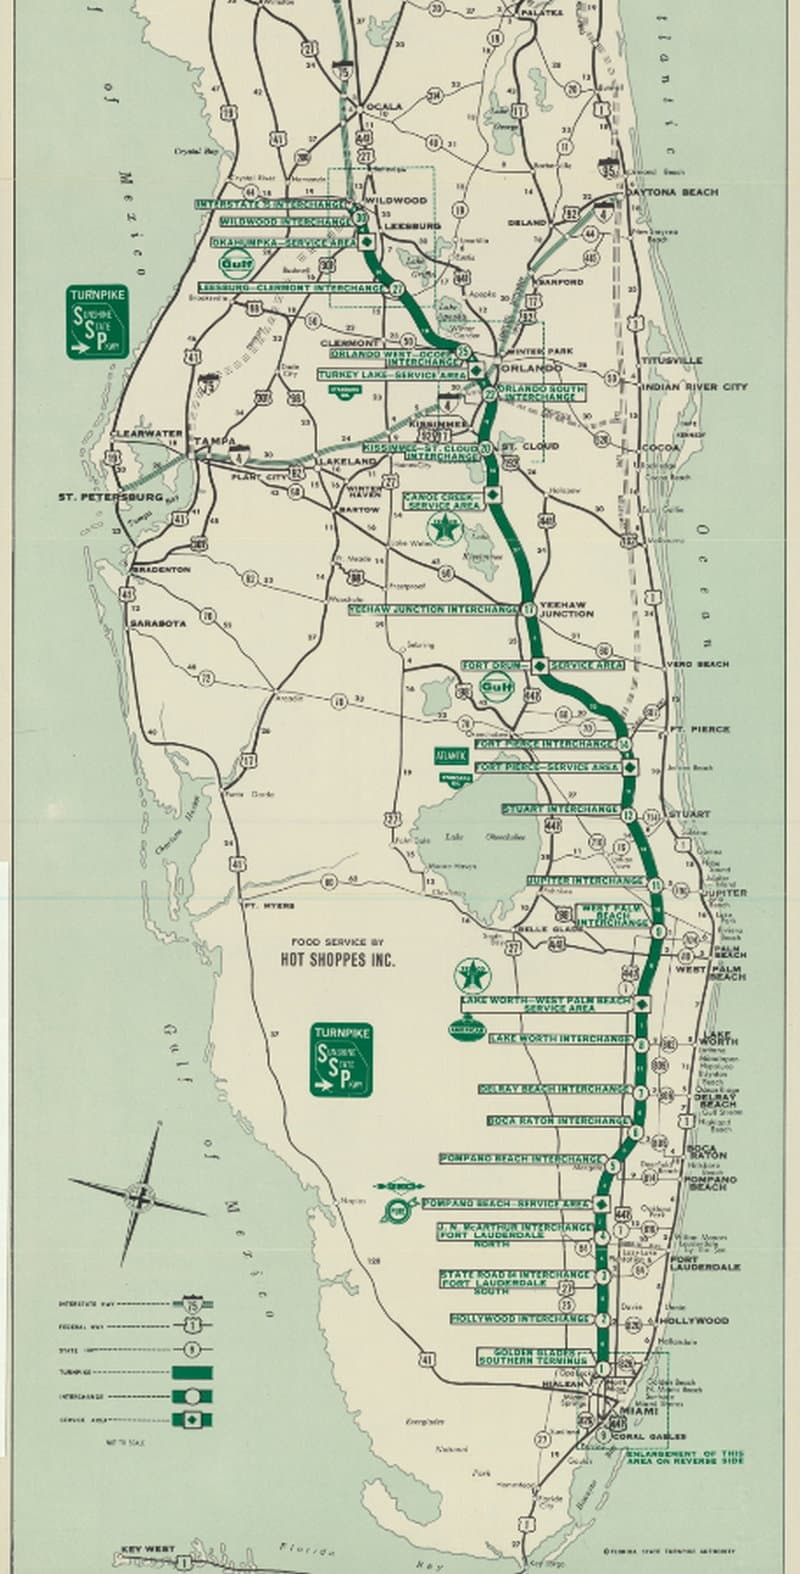 Florida Turnpike 1964 - Florida Memory